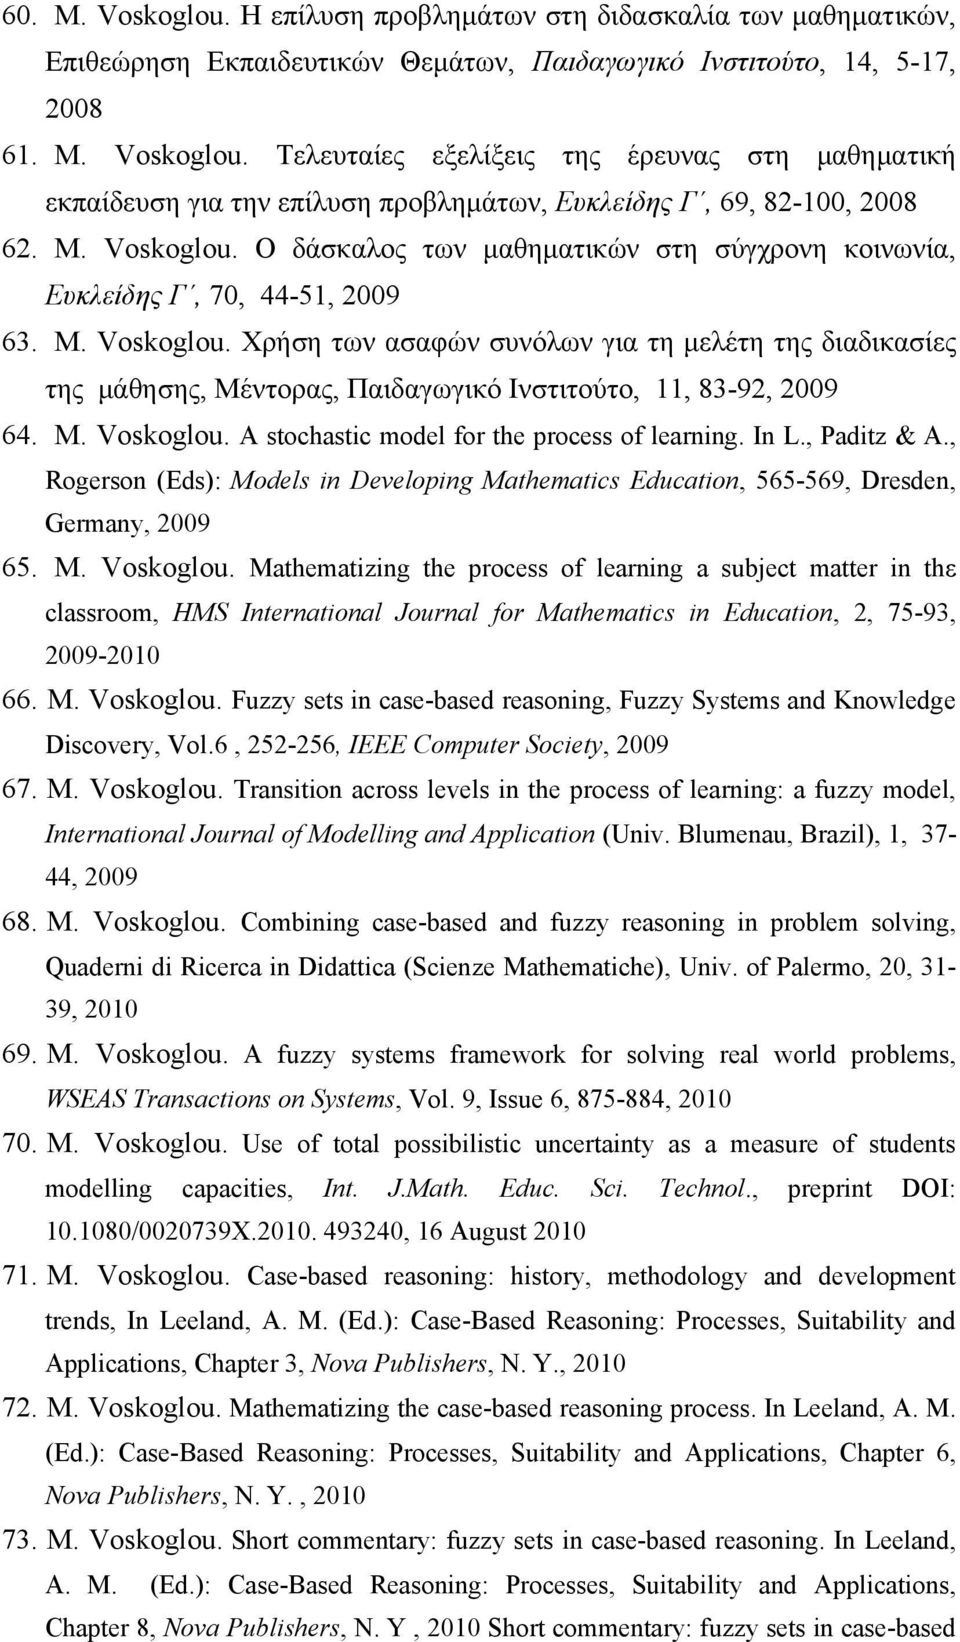 M. Voskoglou. A stochastic model for the process of learning. In L., Paditz & A., Rogerson (Eds): Models in Developing Mathematics Education, 565-569, Dresden, Germany, 2009 65. M. Voskoglou. Μathematizing the process of learning a subject matter in thε classroom, HMS International Journal for Mathematics in Education, 2, 75-93, 2009-2010 66.